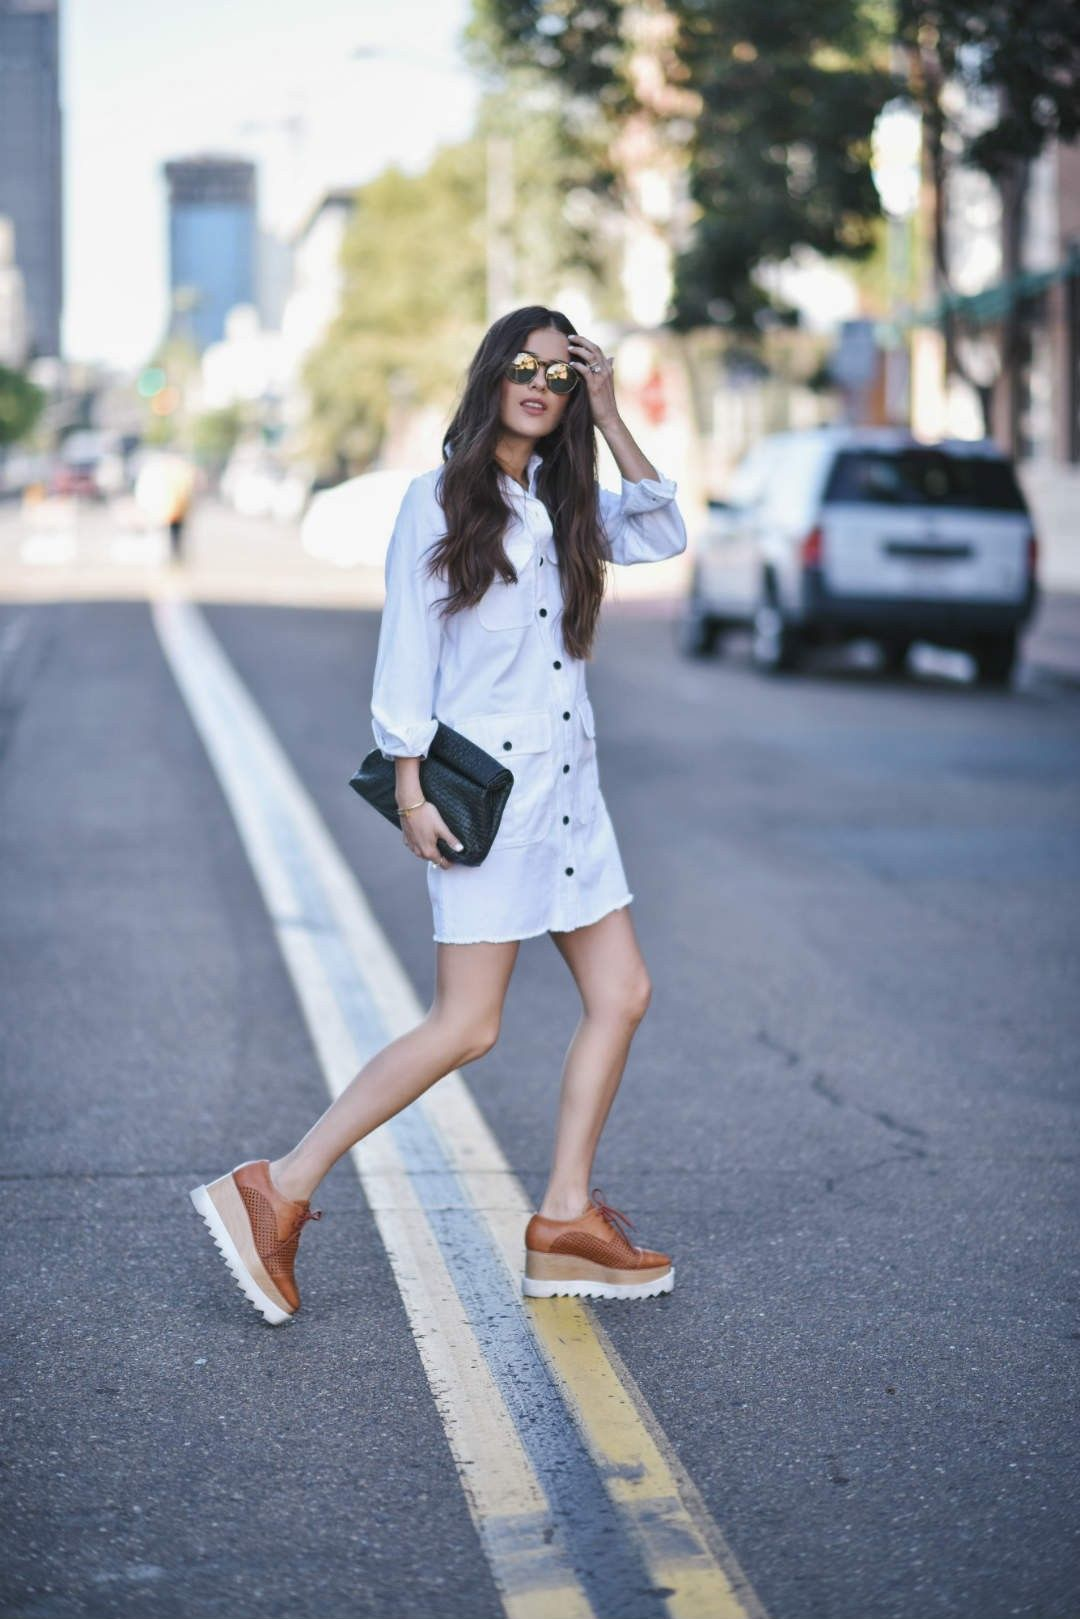 070410bf5fc09 Pin by Zay on Platform Brogue Slay in 2019 | Fashion outfits, Cute ...